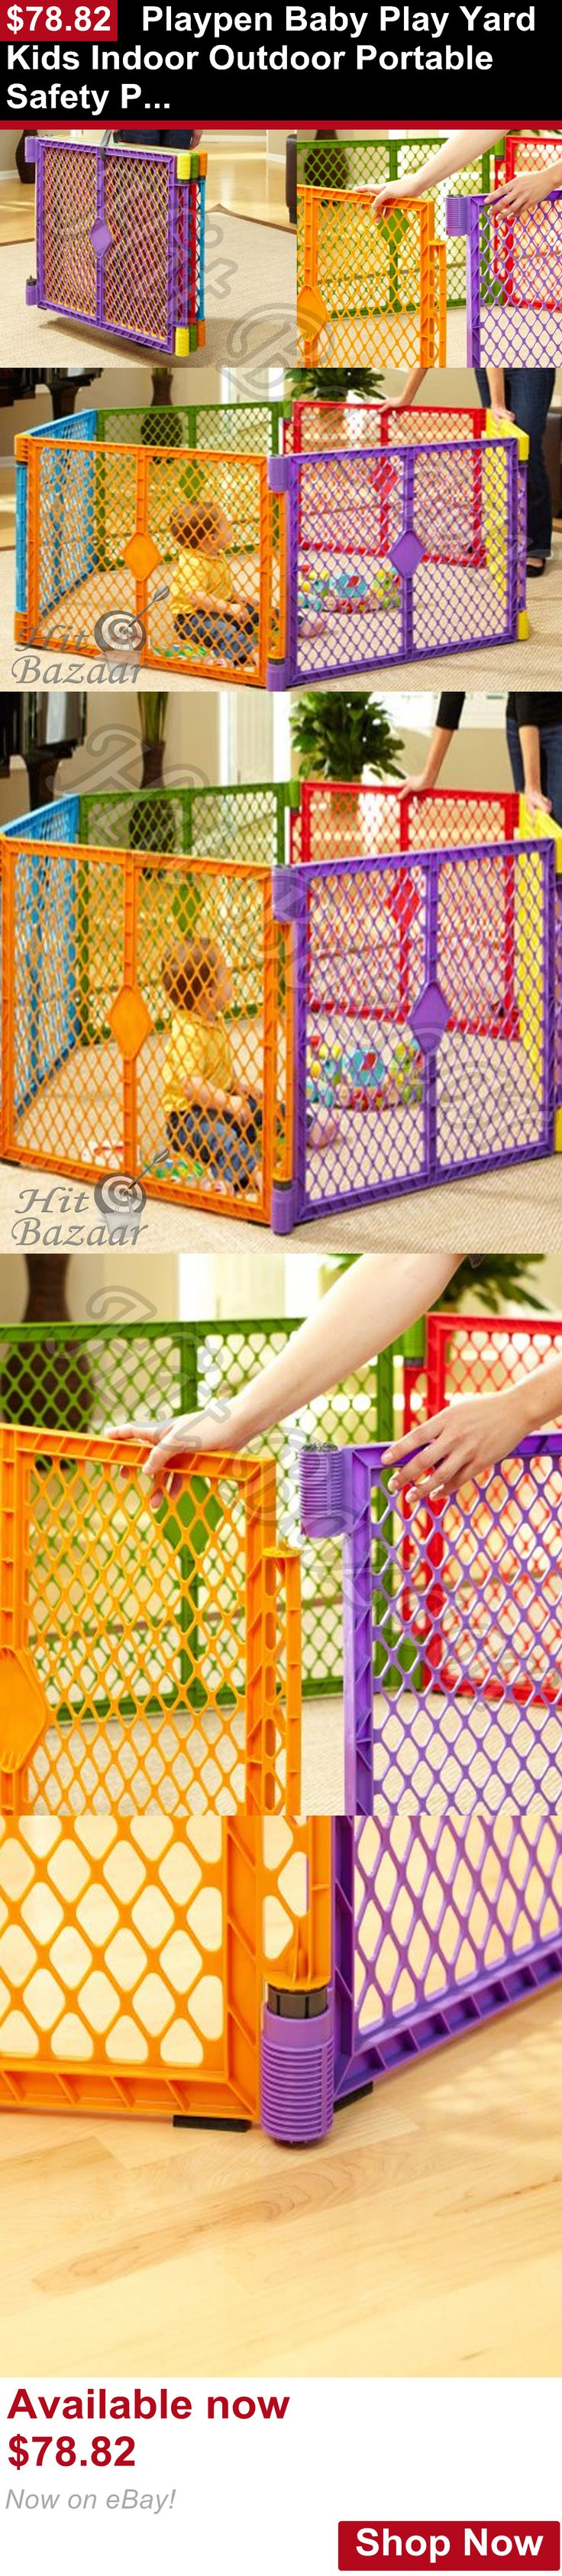 Baby Play pens and play yards: Playpen Baby Play Yard Kids Indoor Outdoor Portable Safety Playard Gate Game Pen BUY IT NOW ONLY: $78.82